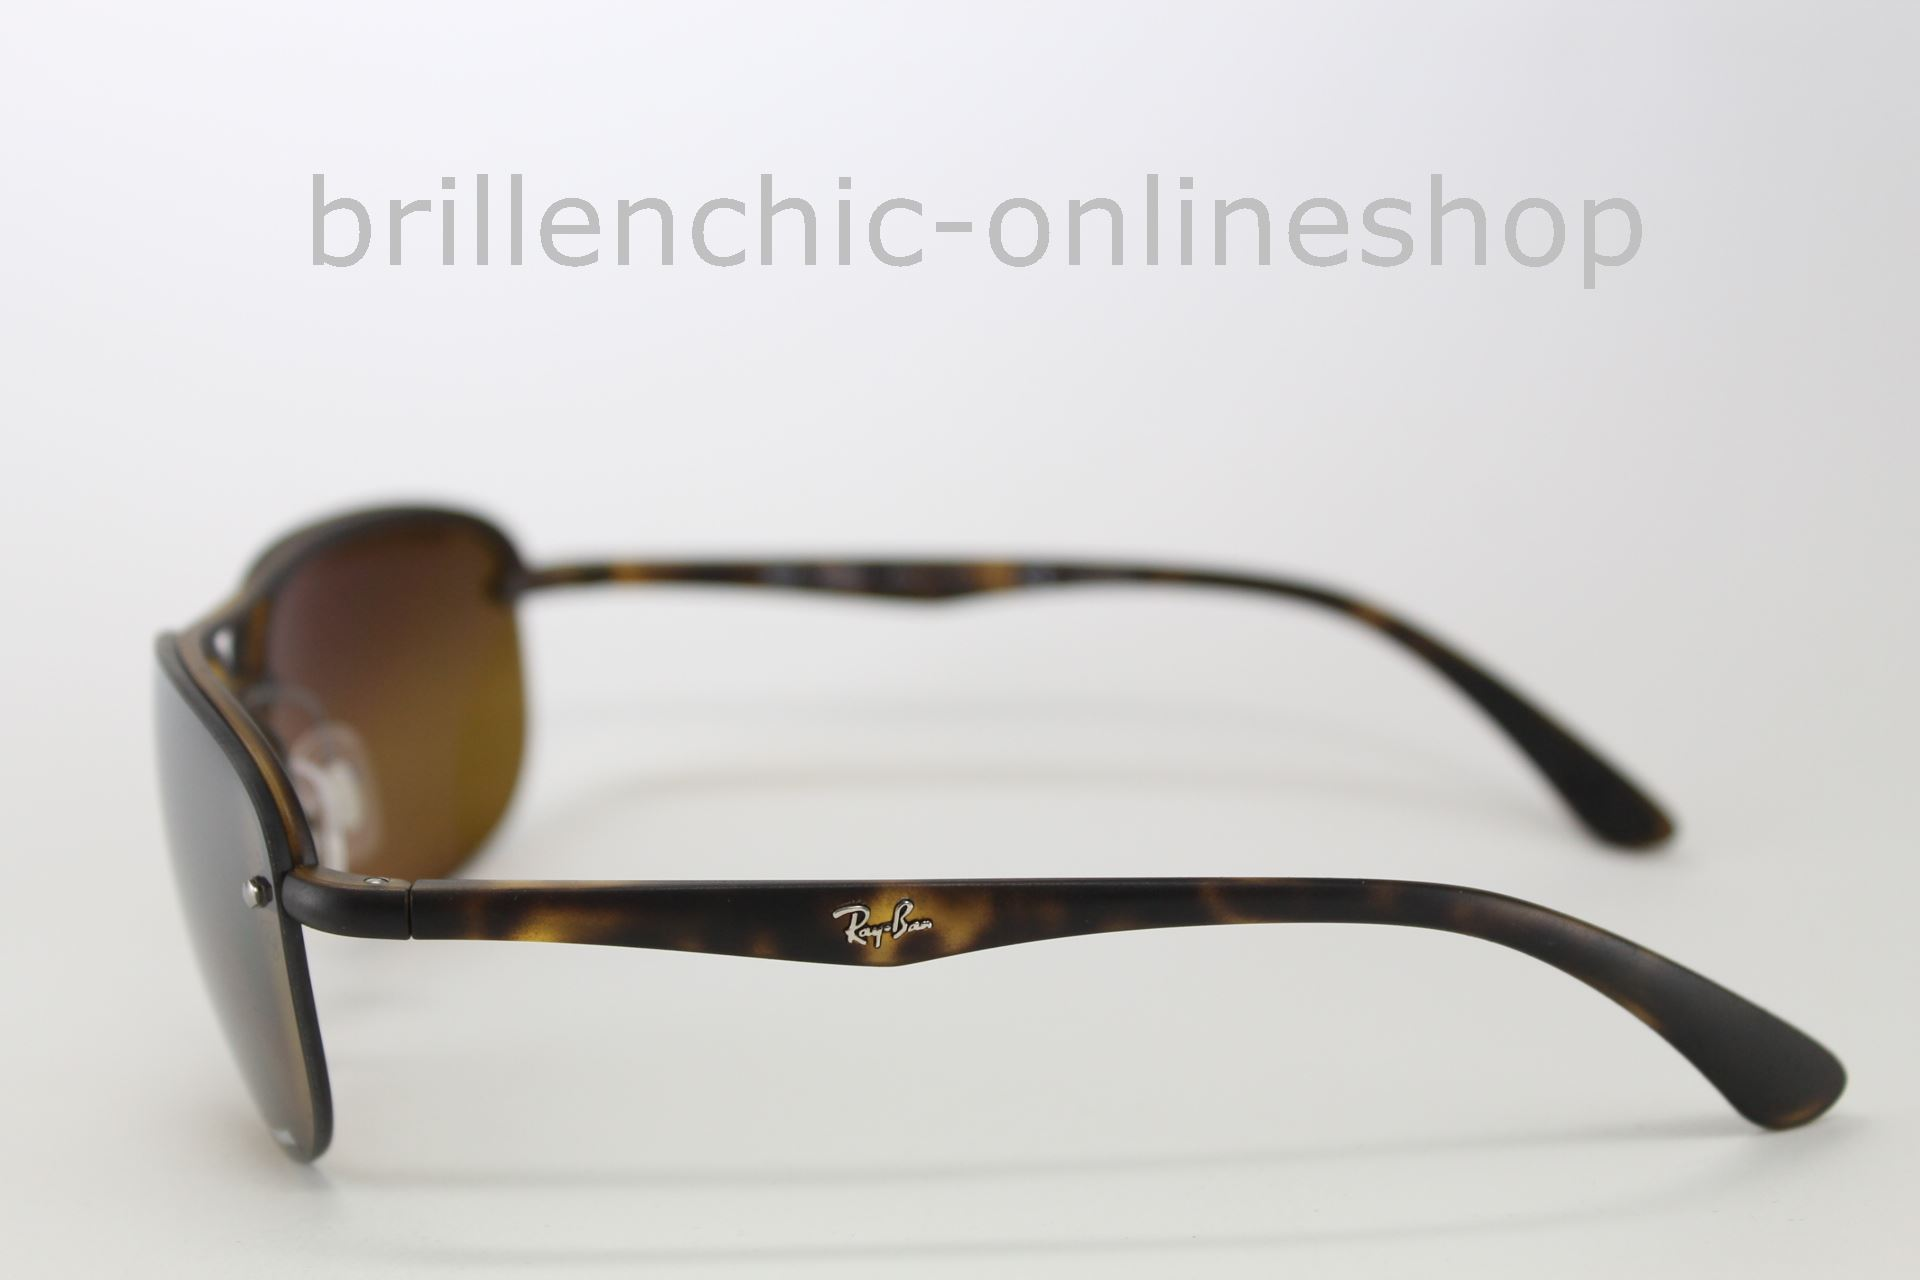 f528980c57 Brillenchic-onlineshop in Berlin - Ray Ban CHROMANCE RB 4275CH 4275 ...